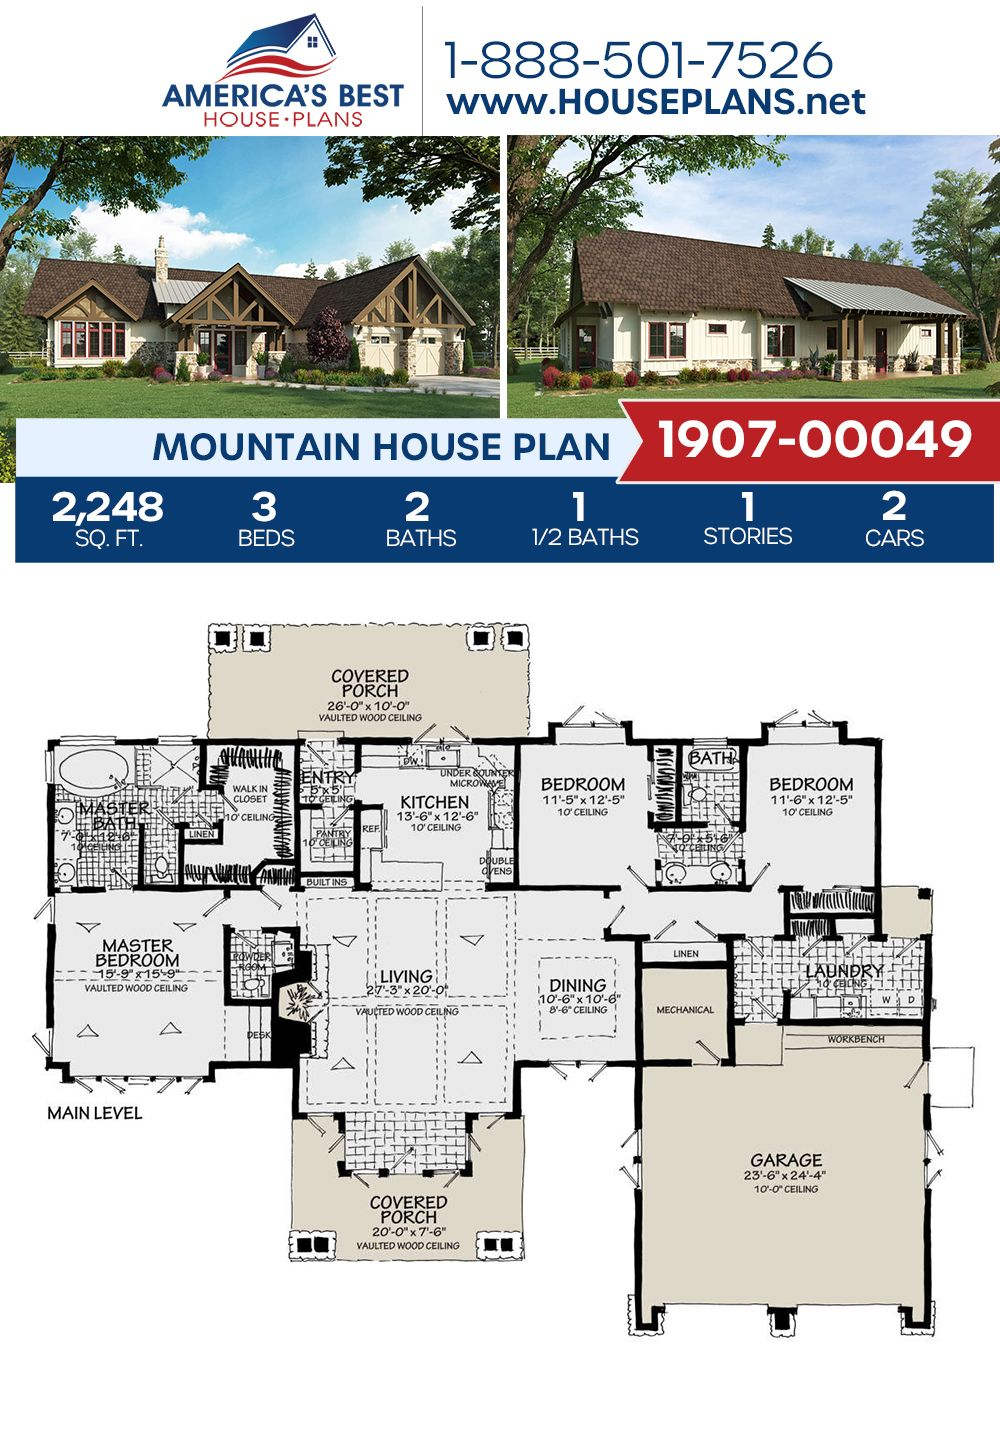 House Plan 1907 00049 Mountain Plan 2 248 Square Feet 3 Bedrooms 2 5 Bathrooms Mountain House Plans House Plans Dream House Plans